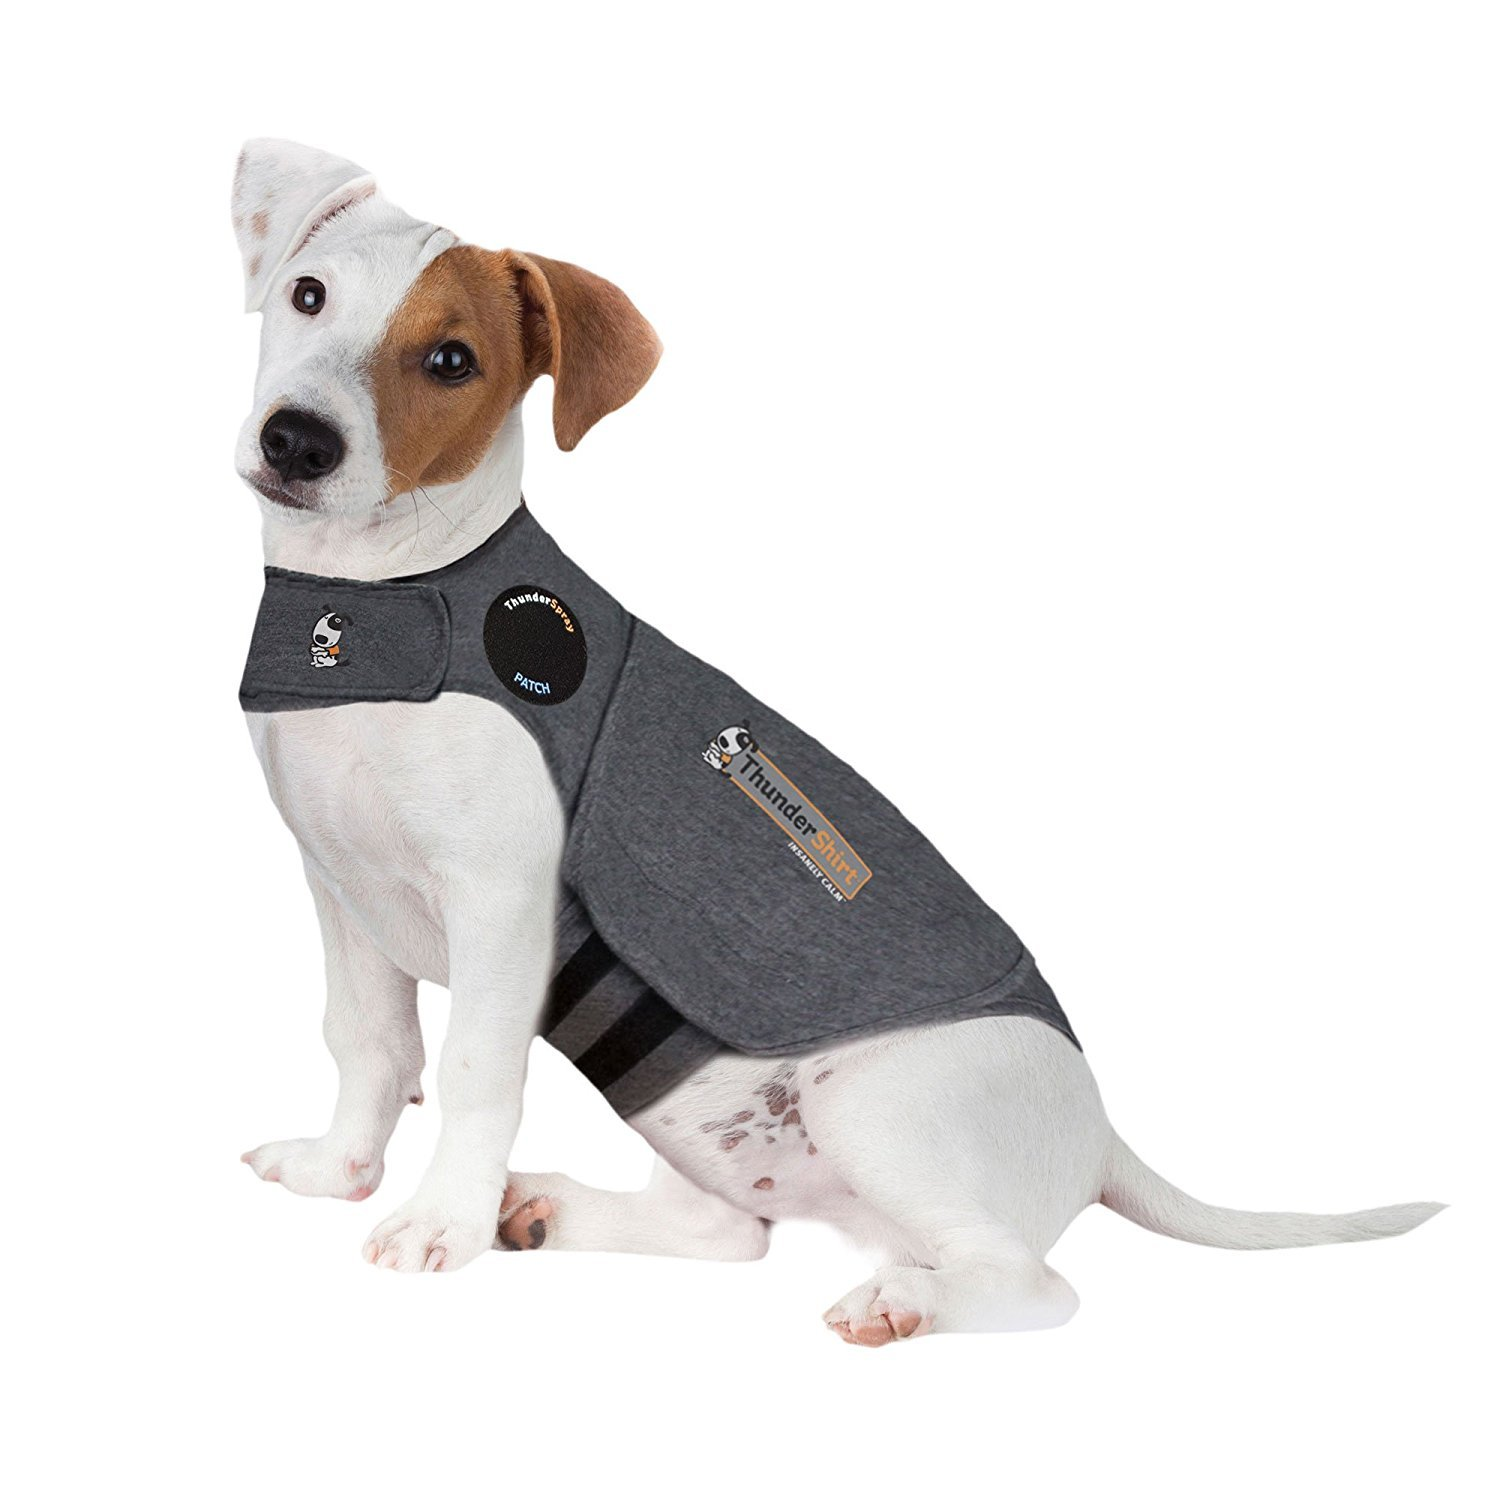 Thunder Design Classic Anti-Anxiety Dog Jacket Over Excitement Shirt Keep Calm Clothes Warm Coat (Medium26-40 lbs)